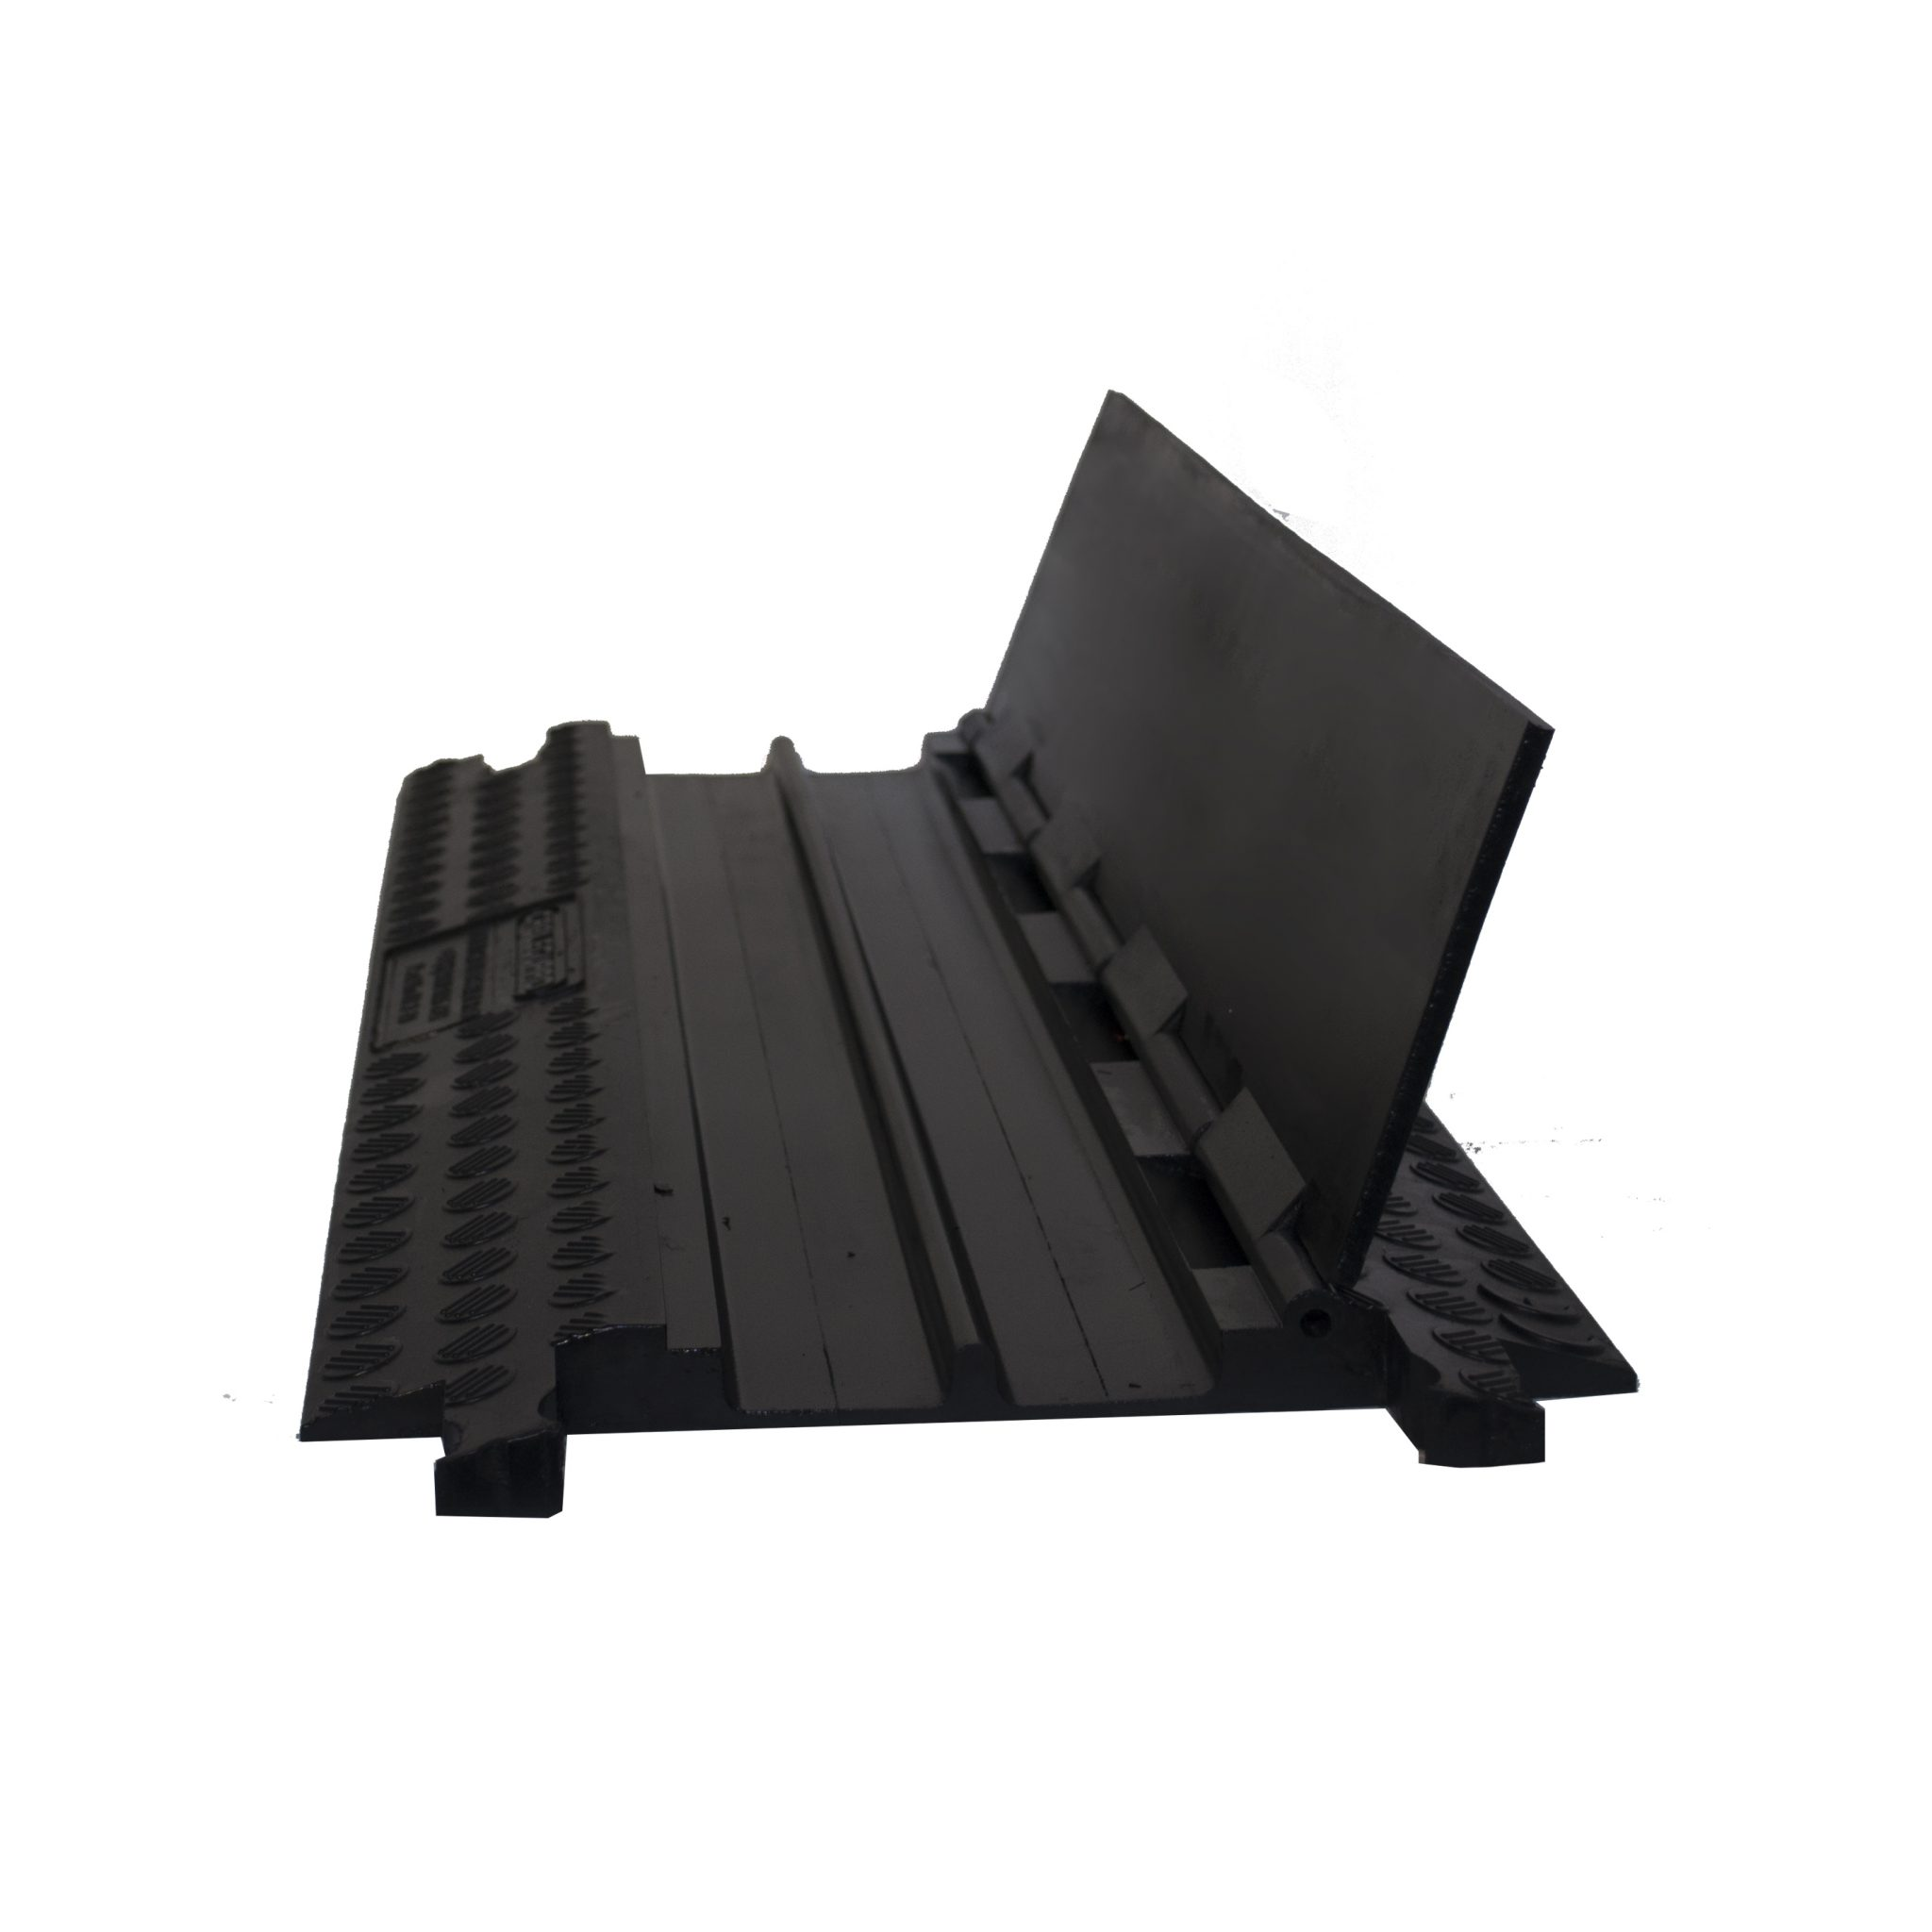 Cable Protector Ramp, Black Line, 2 Channels - 100cm